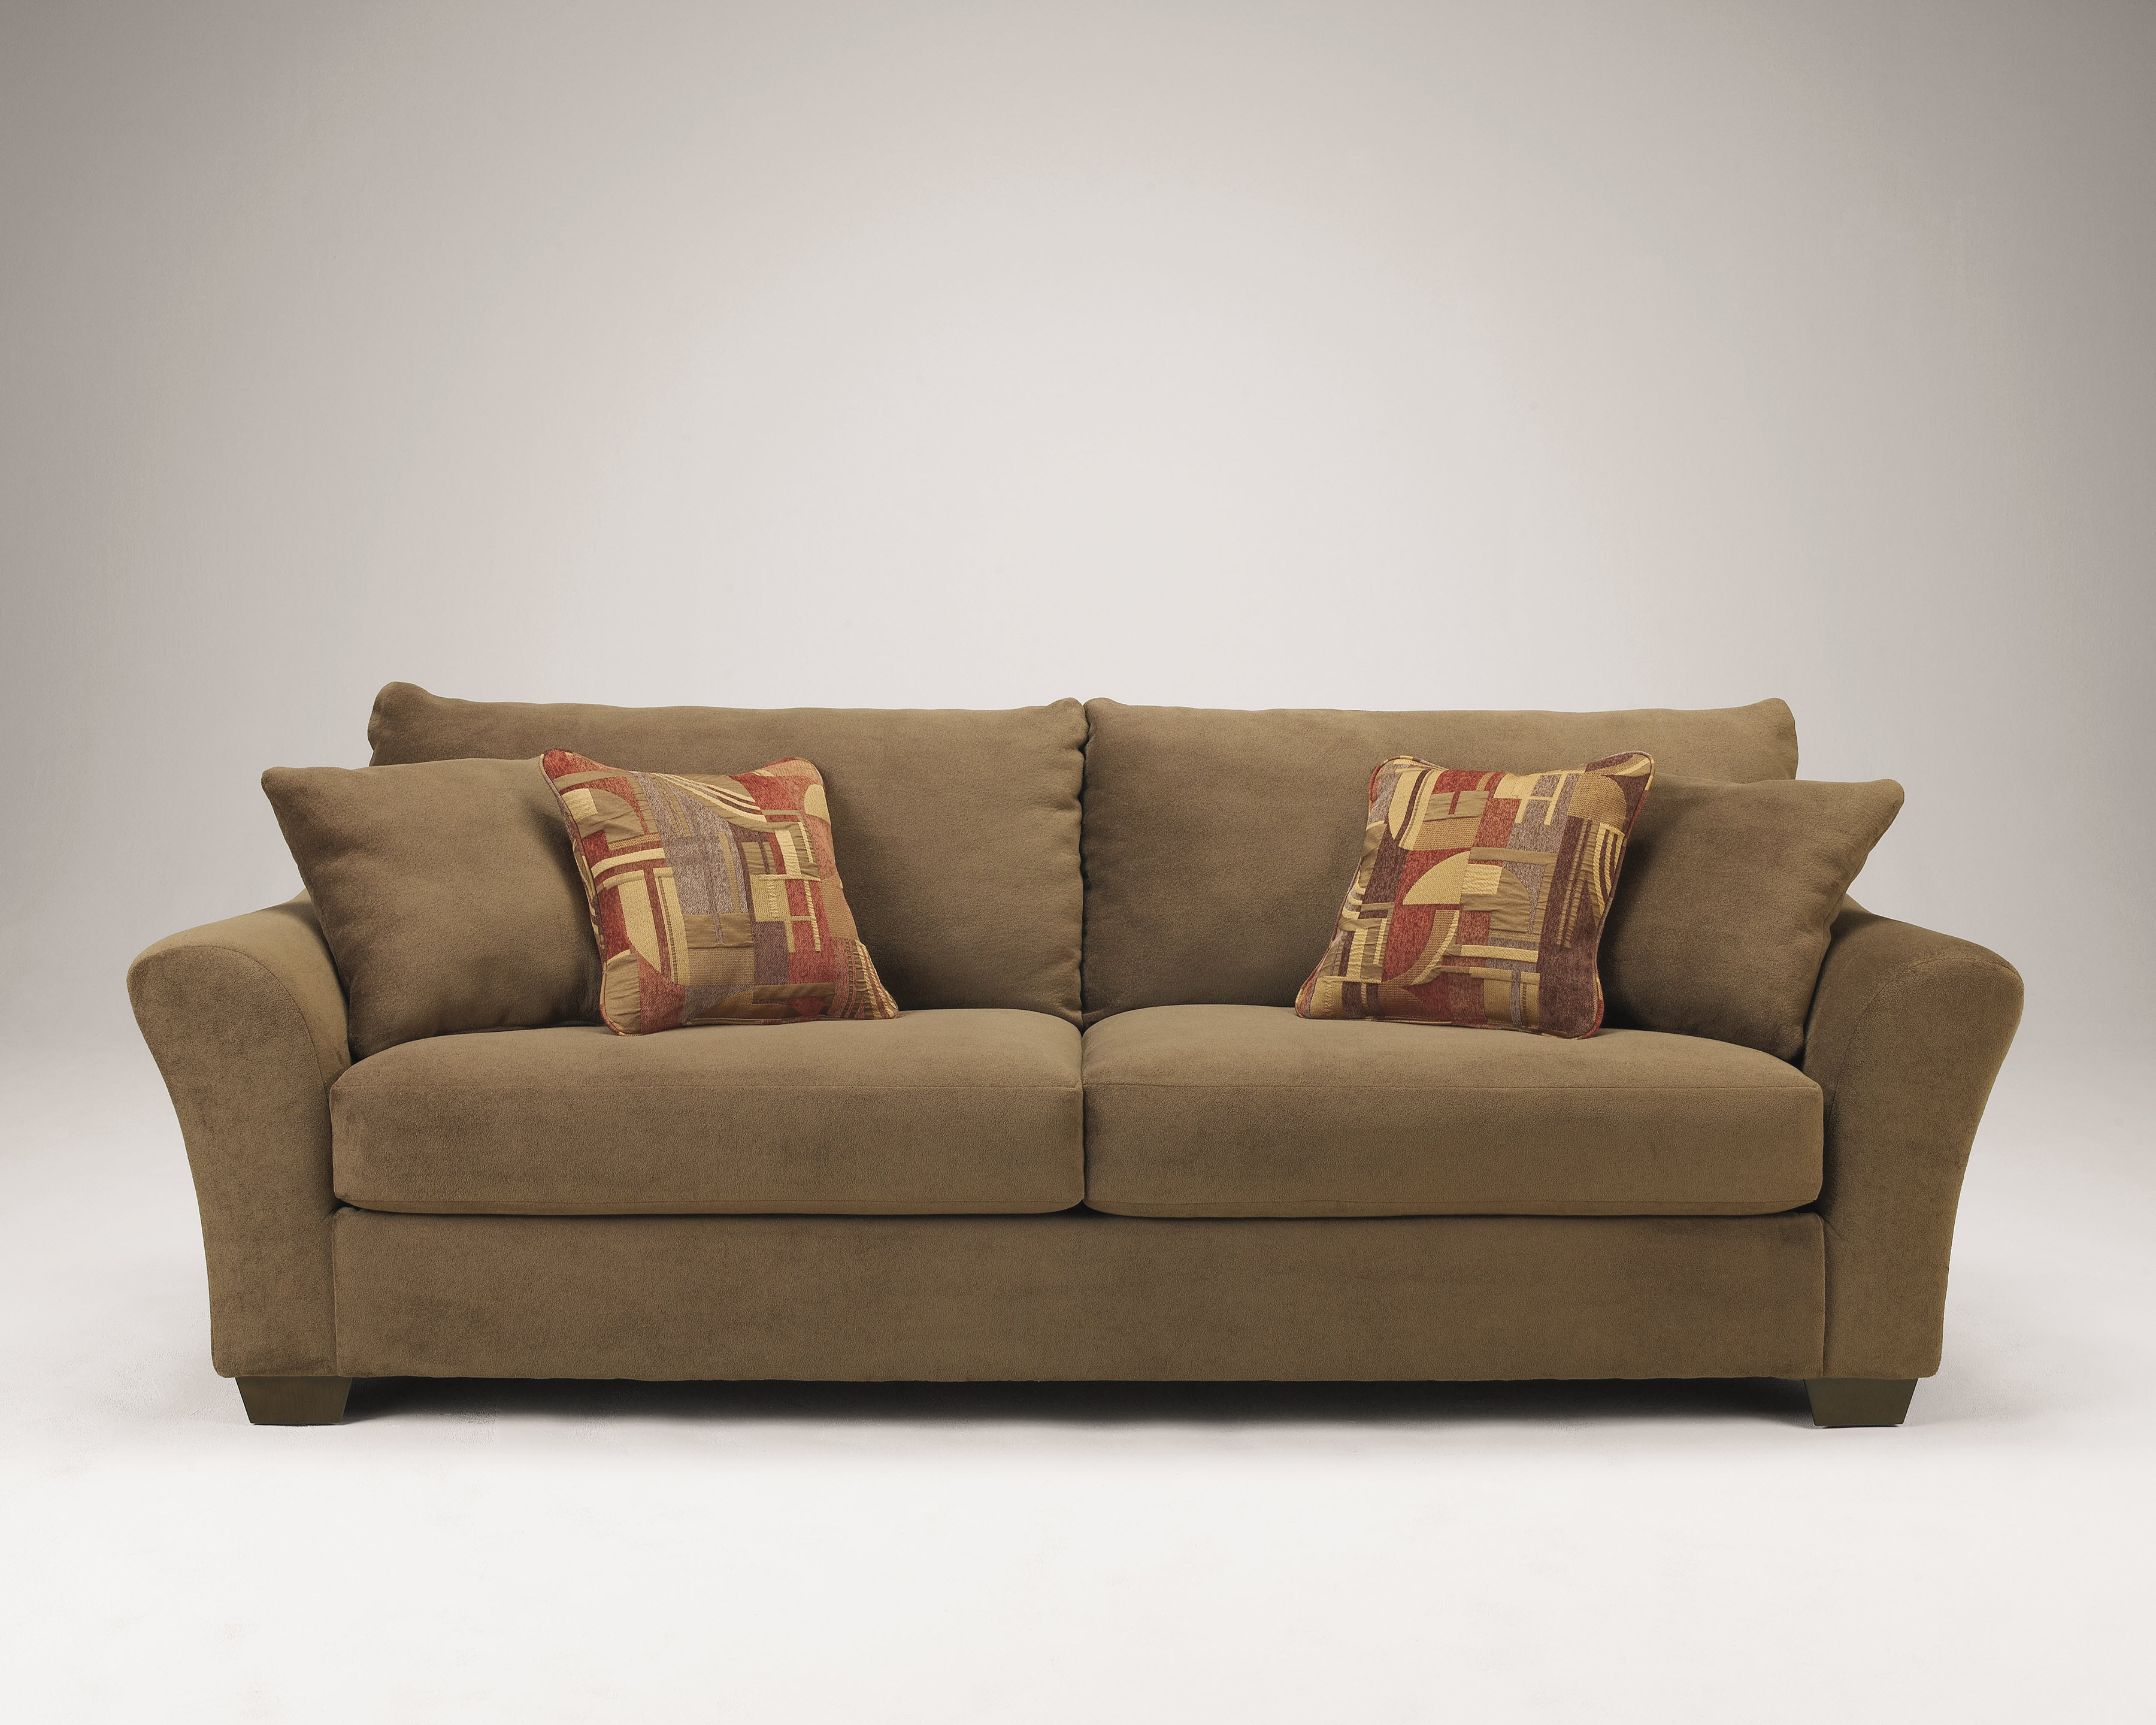 Couch Sofas Ashley Furniture Homestore Announces Launch Of Biannual